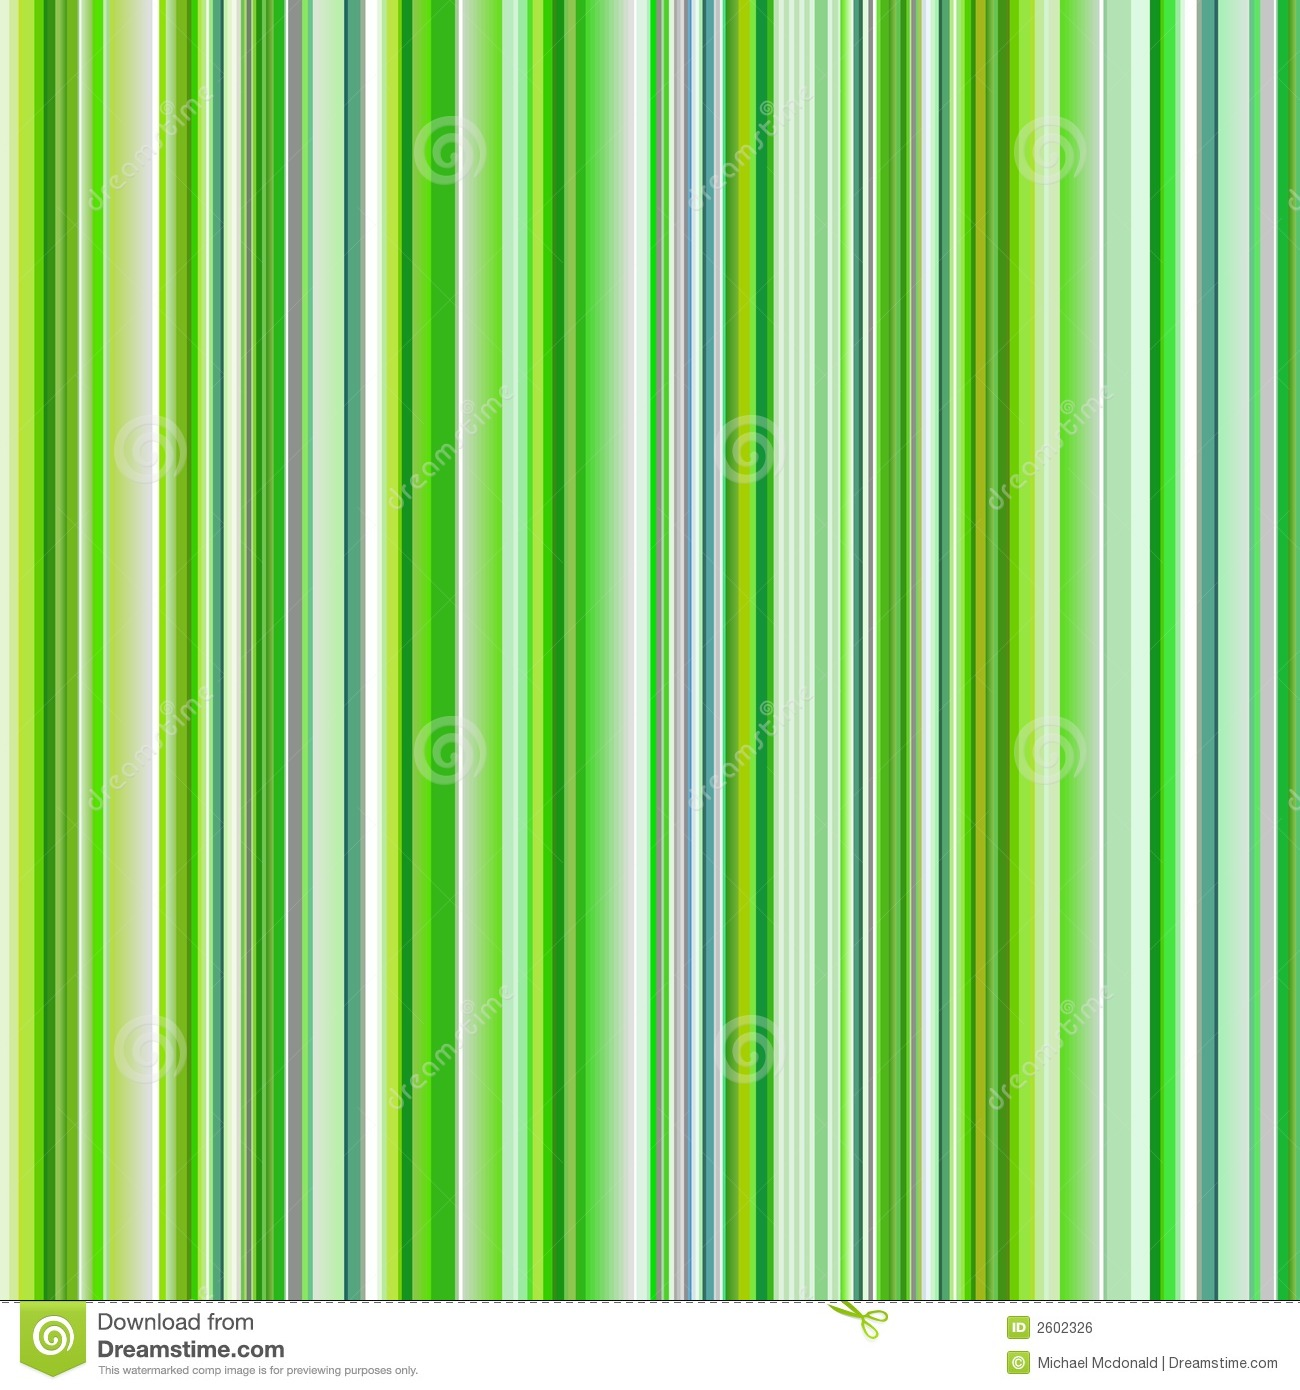 Green Striped Abstract Background Variable Width Stripes